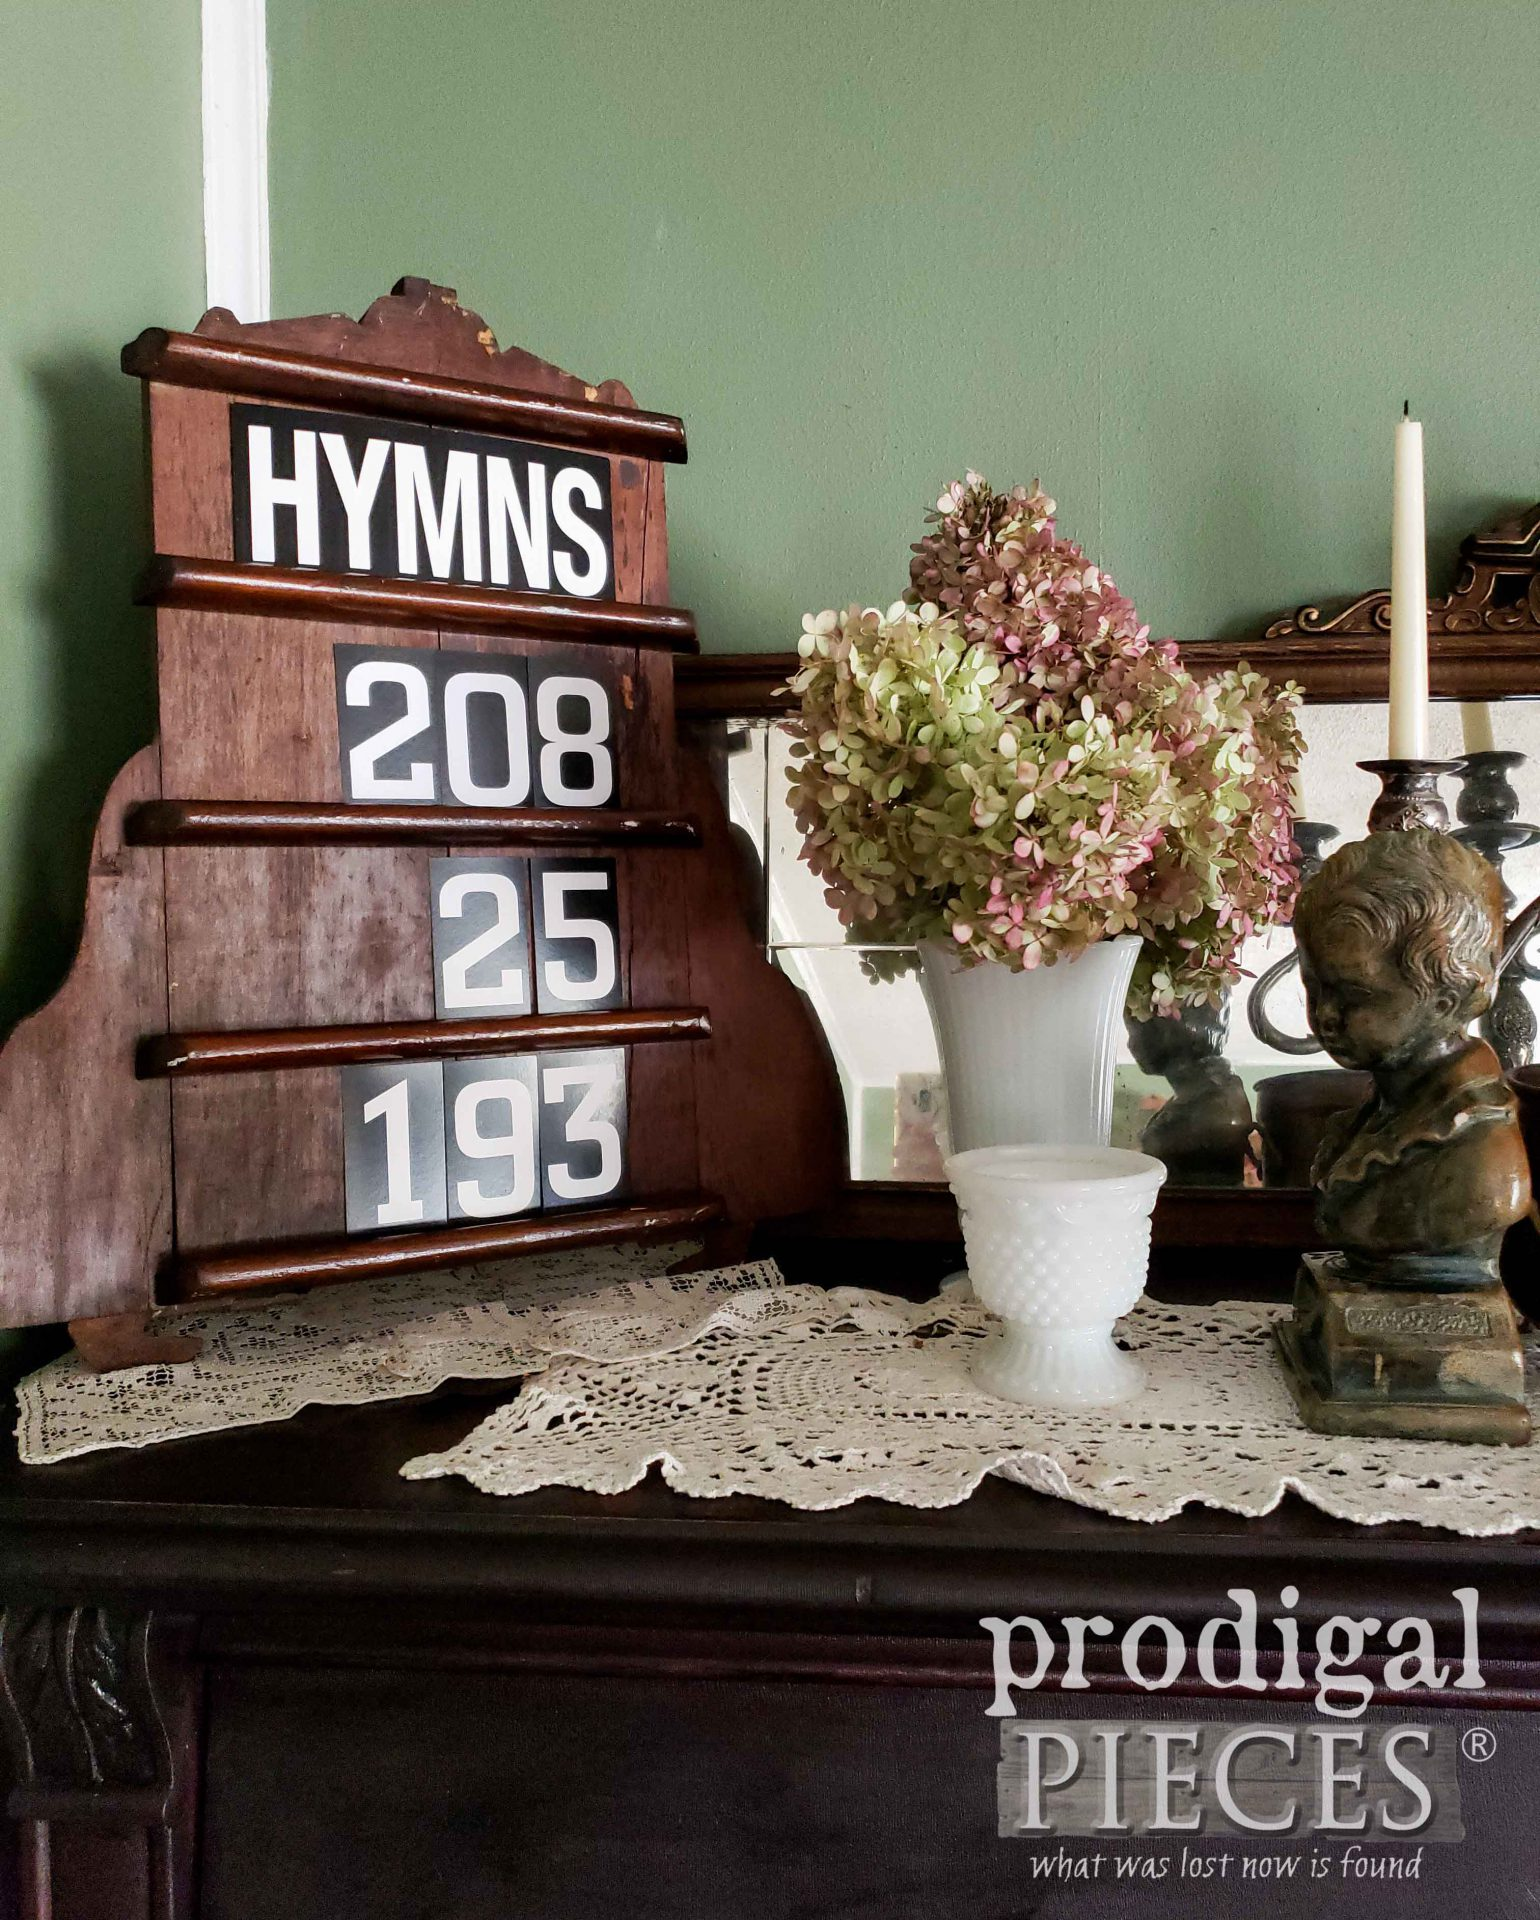 Rustic Farmhouse Upcycled Hymn Board Created from Salvaged Parts by Larissa of Prodigal Pieces | prodigalpieces.com #prodigalpieces #diy #home #farmhouse #homedecor